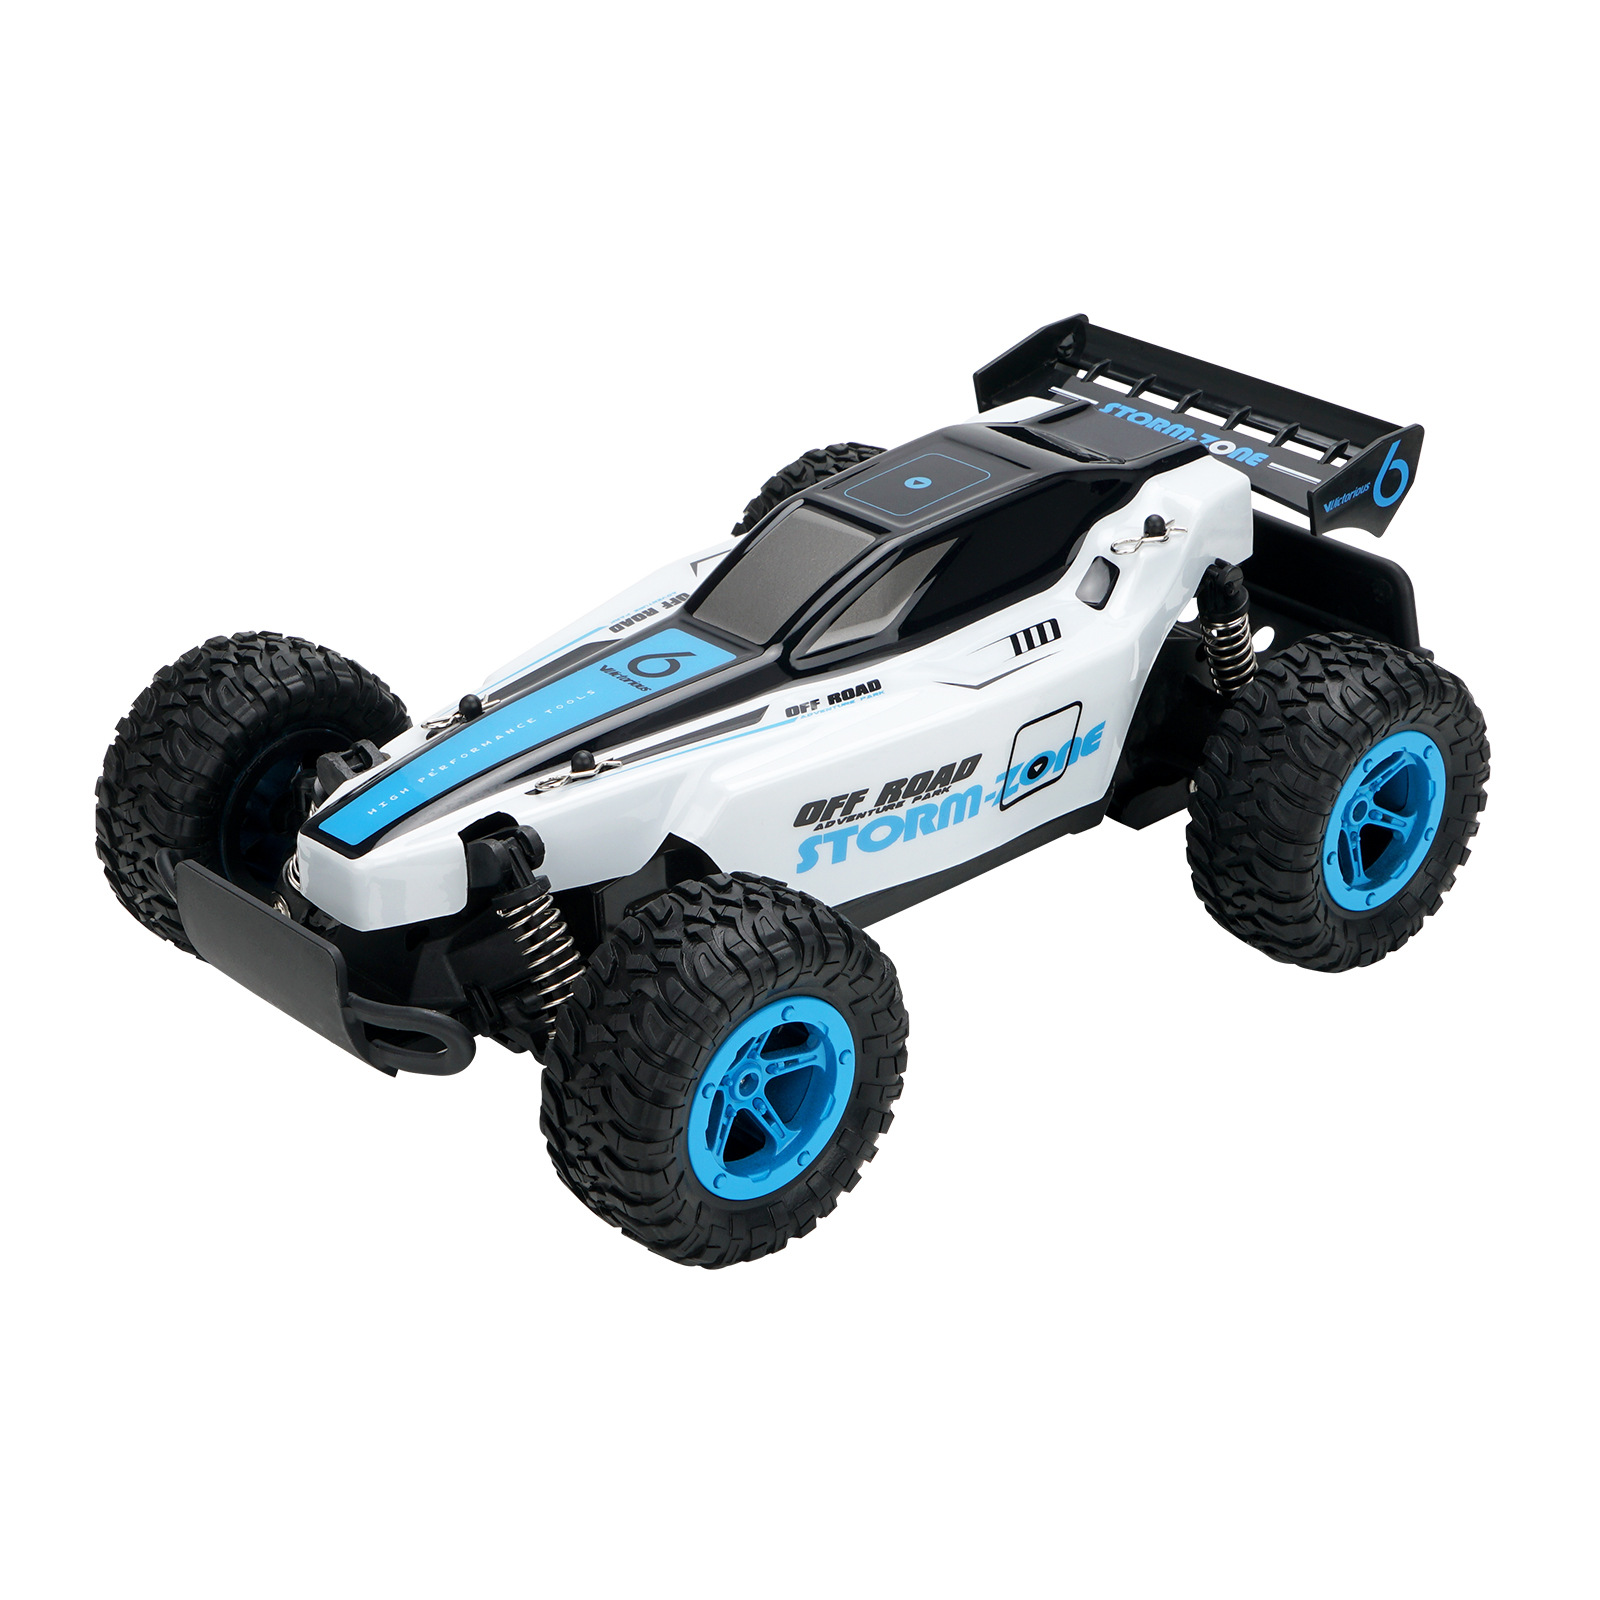 1:14 2.4G RC Racing Car 4WD Remote Control High Speed Electric Racing Climbing RC Stunt Car Drift Vehicle Model Toy For Boy blue